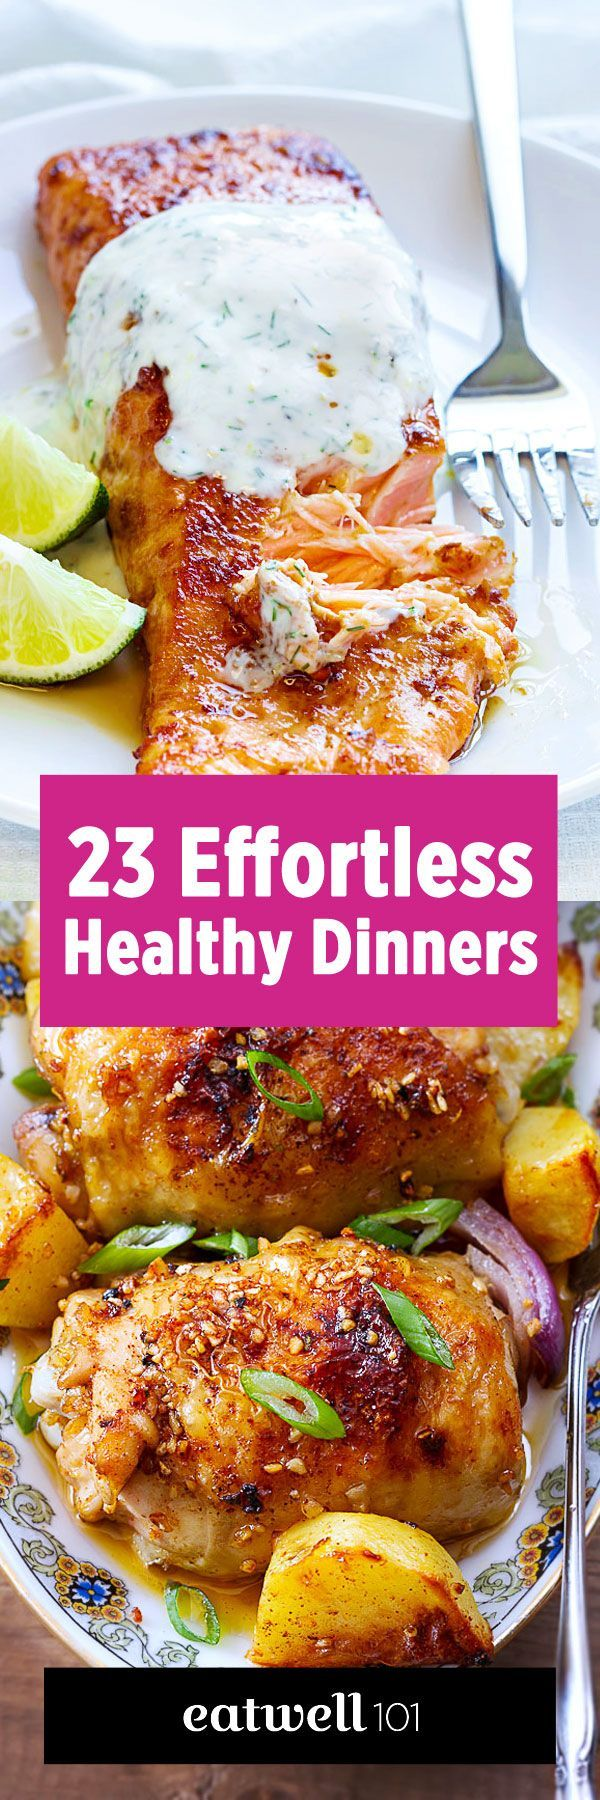 These super easy meals are also a great option to grab the basics if you're just getting started learning to cook!